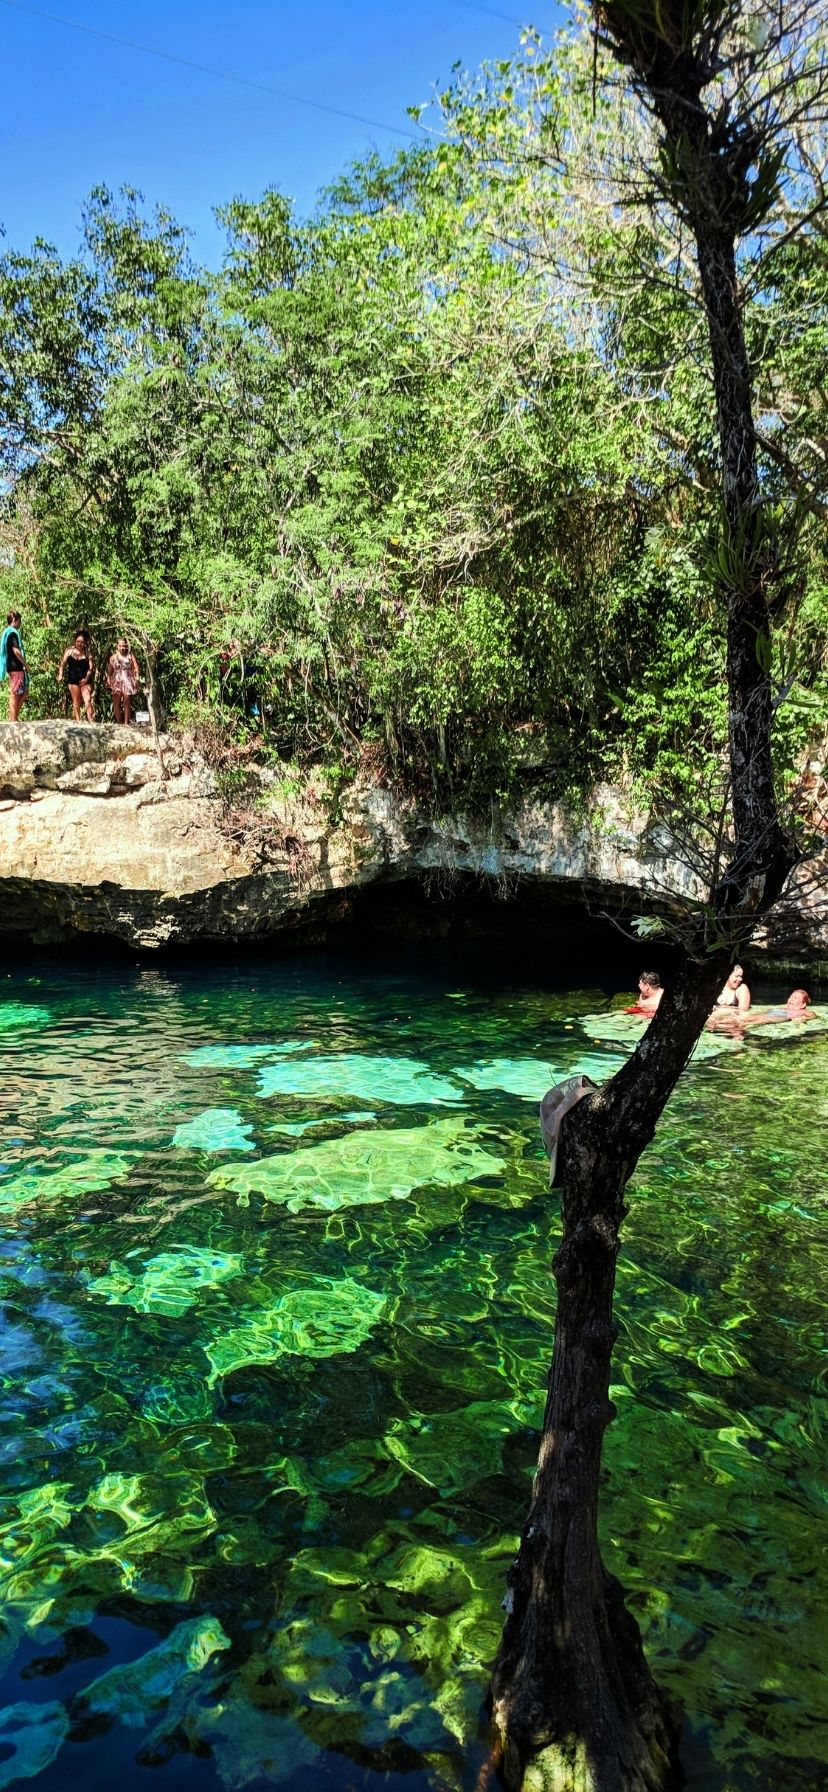 The Cenotes near Cancun are amazing and really easy to add to a beach vacation. Cenotes are even easy to visit as a cruise excursion from a Caribbean Mexico port of call or Yucatan road trip.